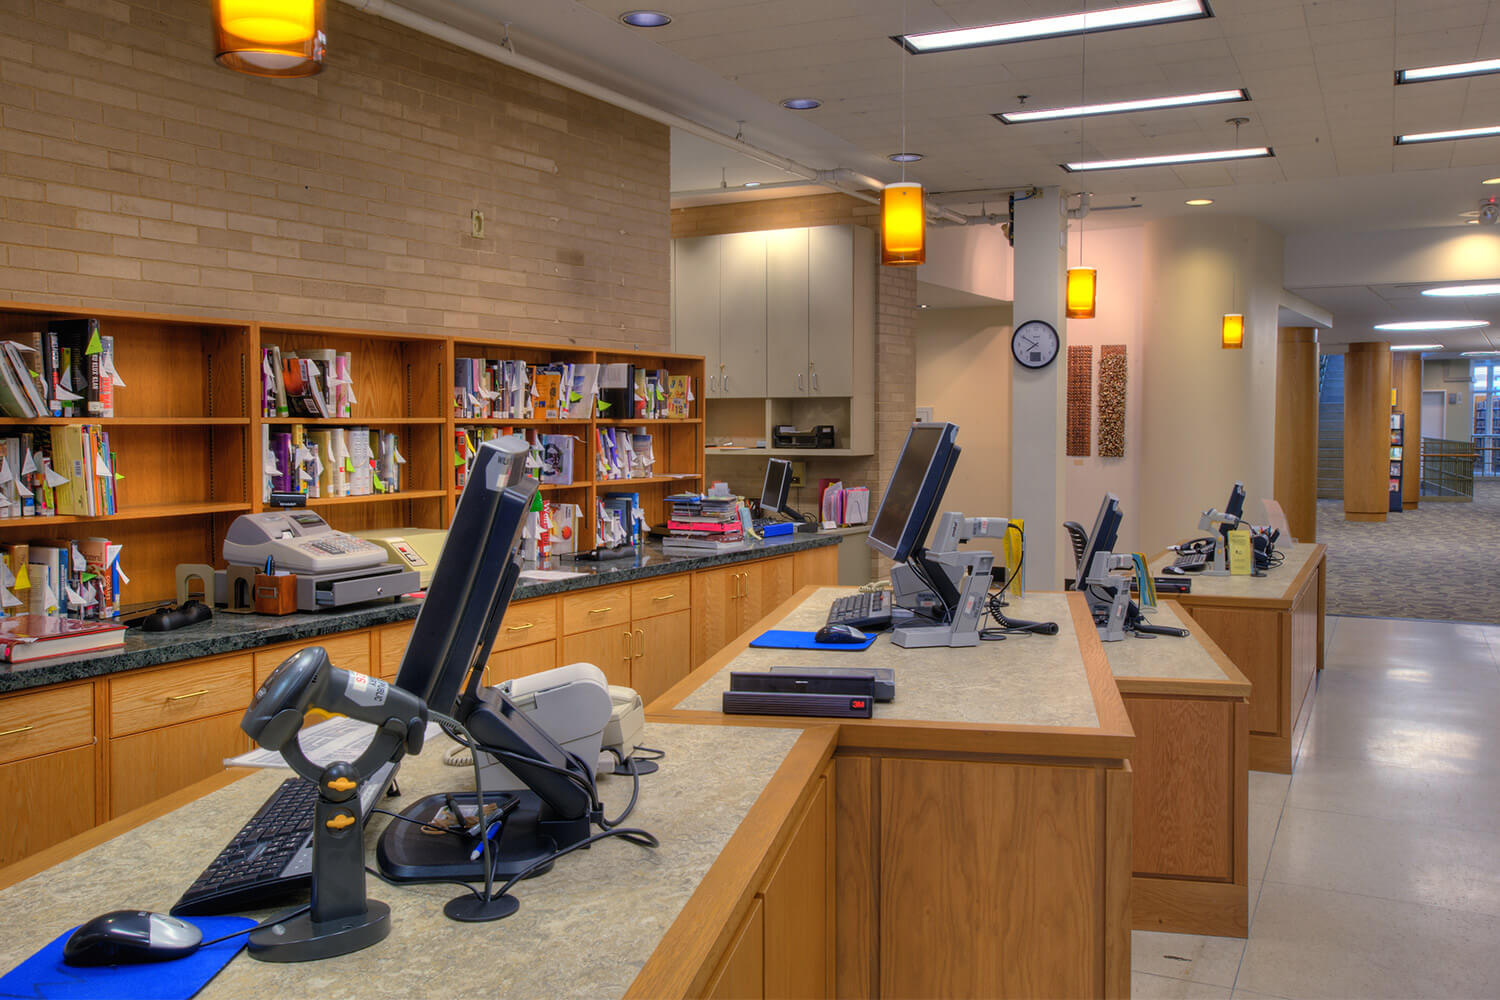 Wilmette Public Library District Renovation check-out desks